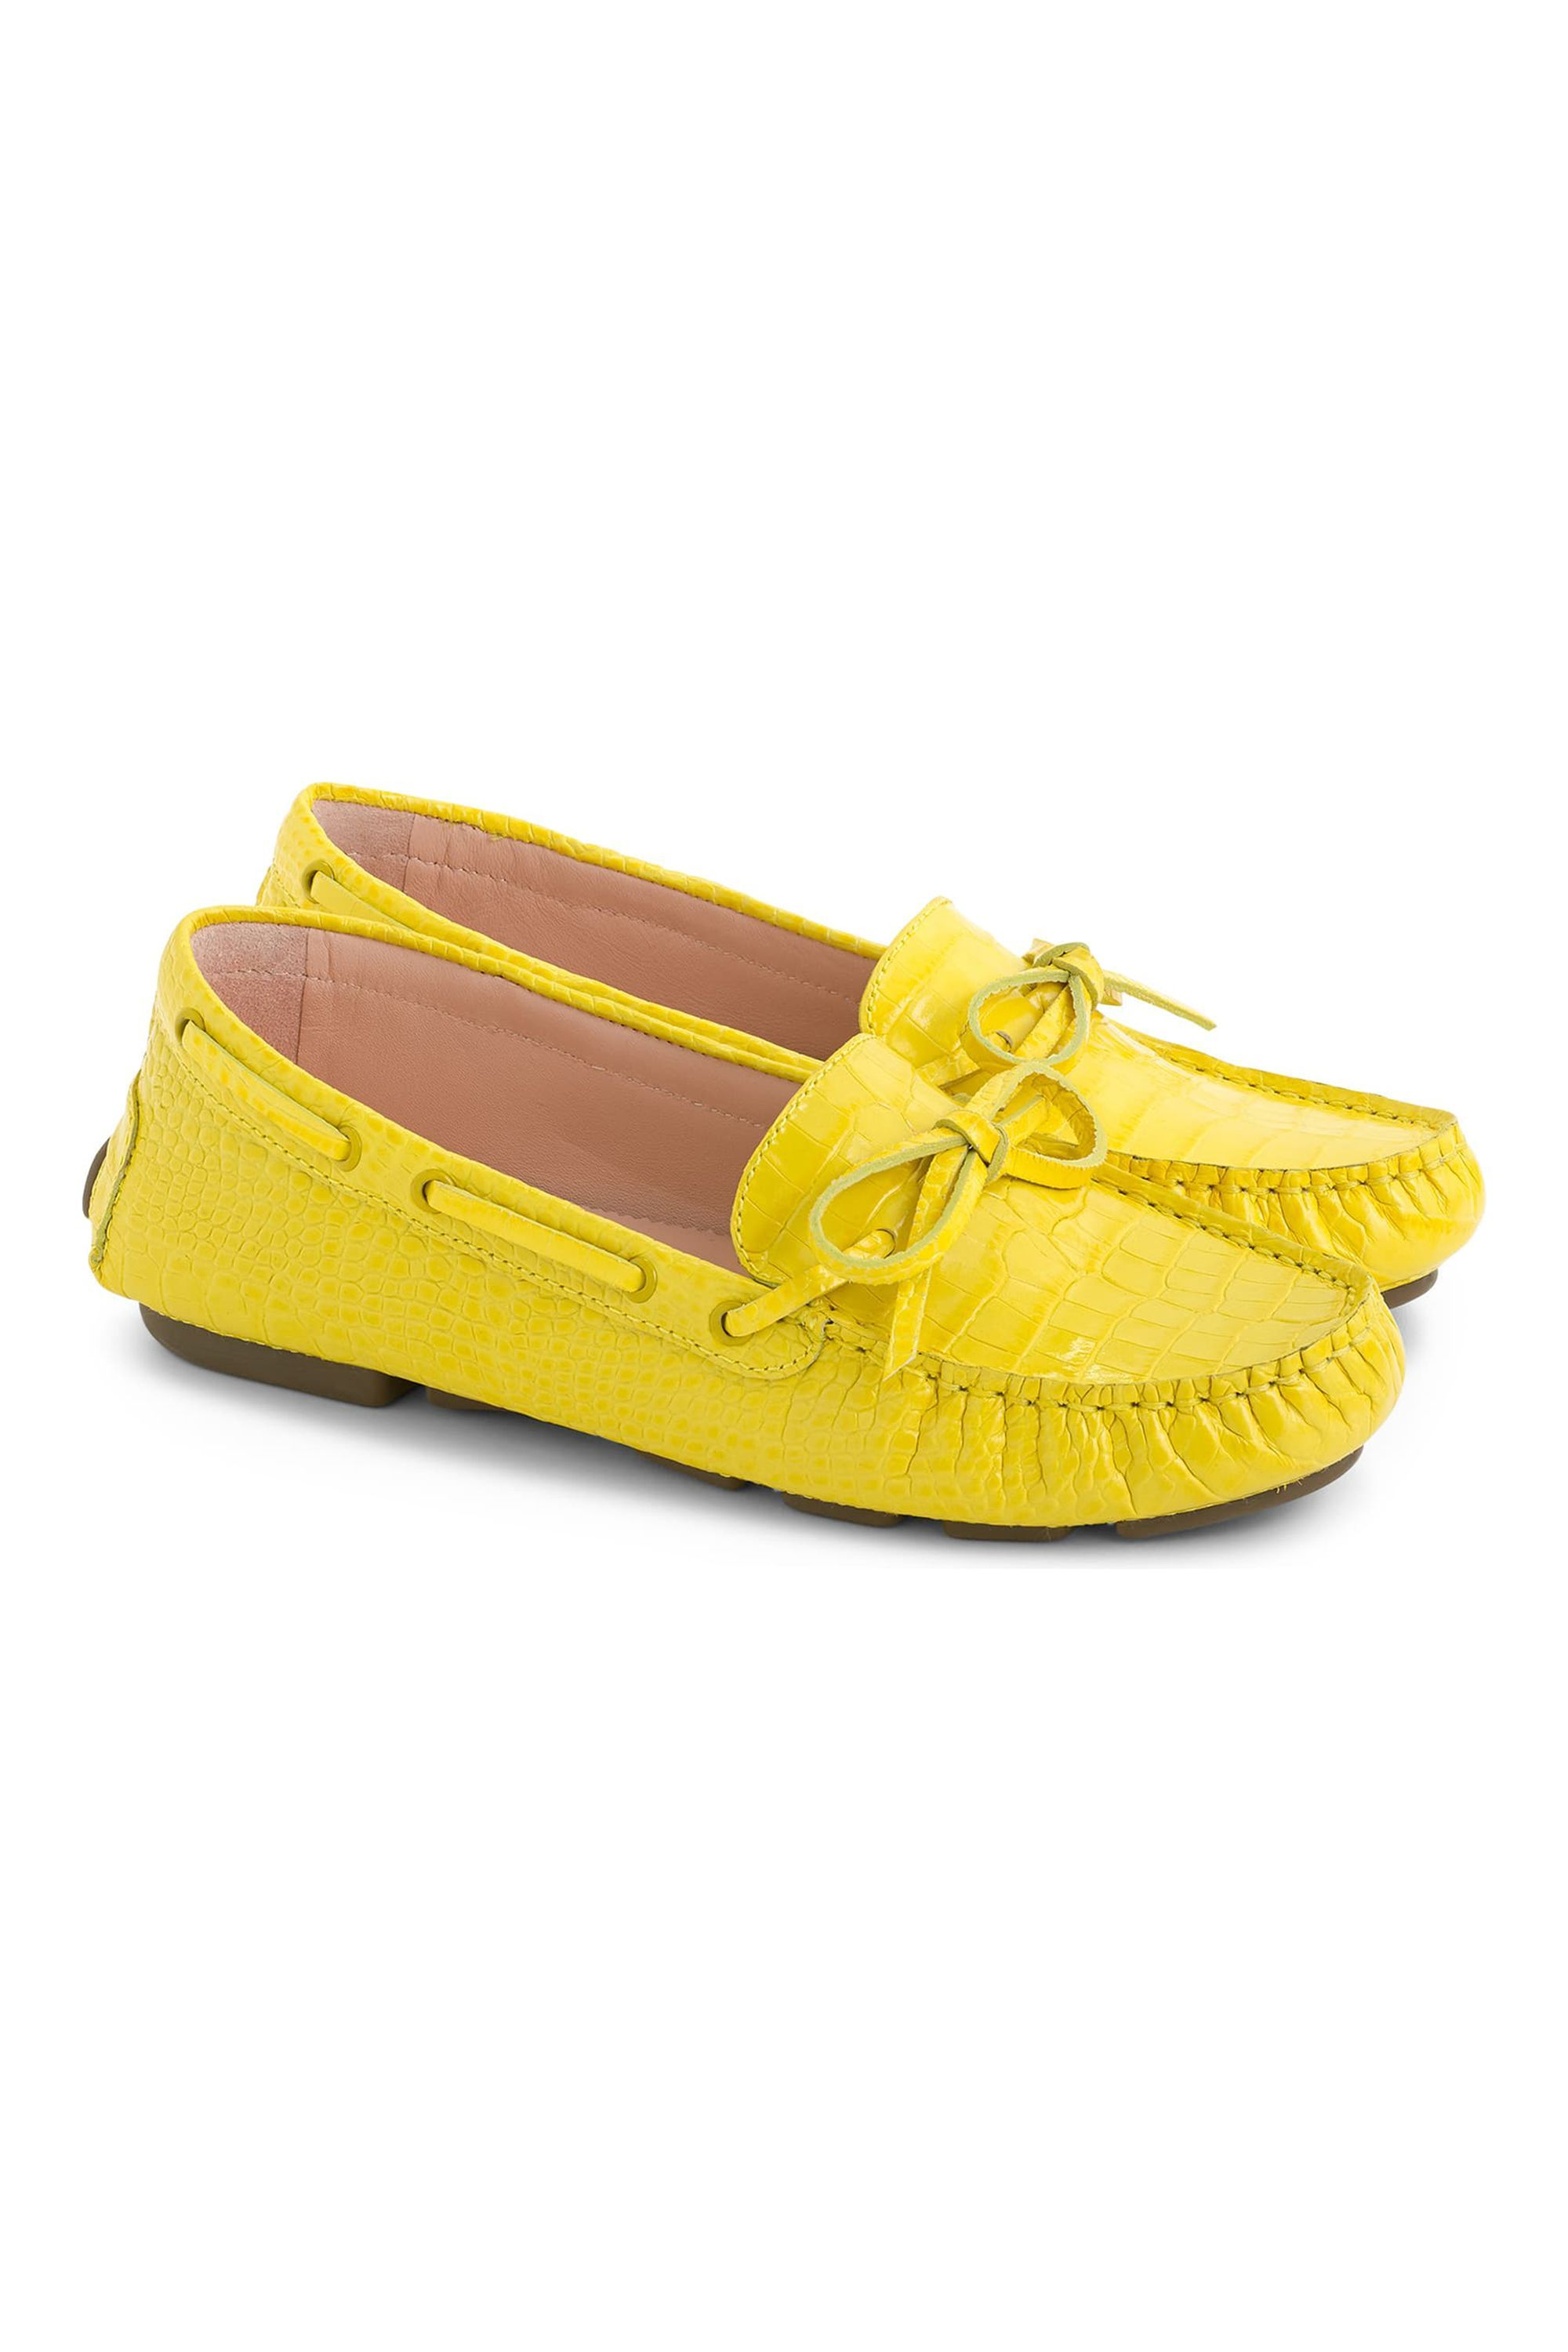 Driving Moccasin J.Crew, $88.80 nordstrom.com SHOP NOW